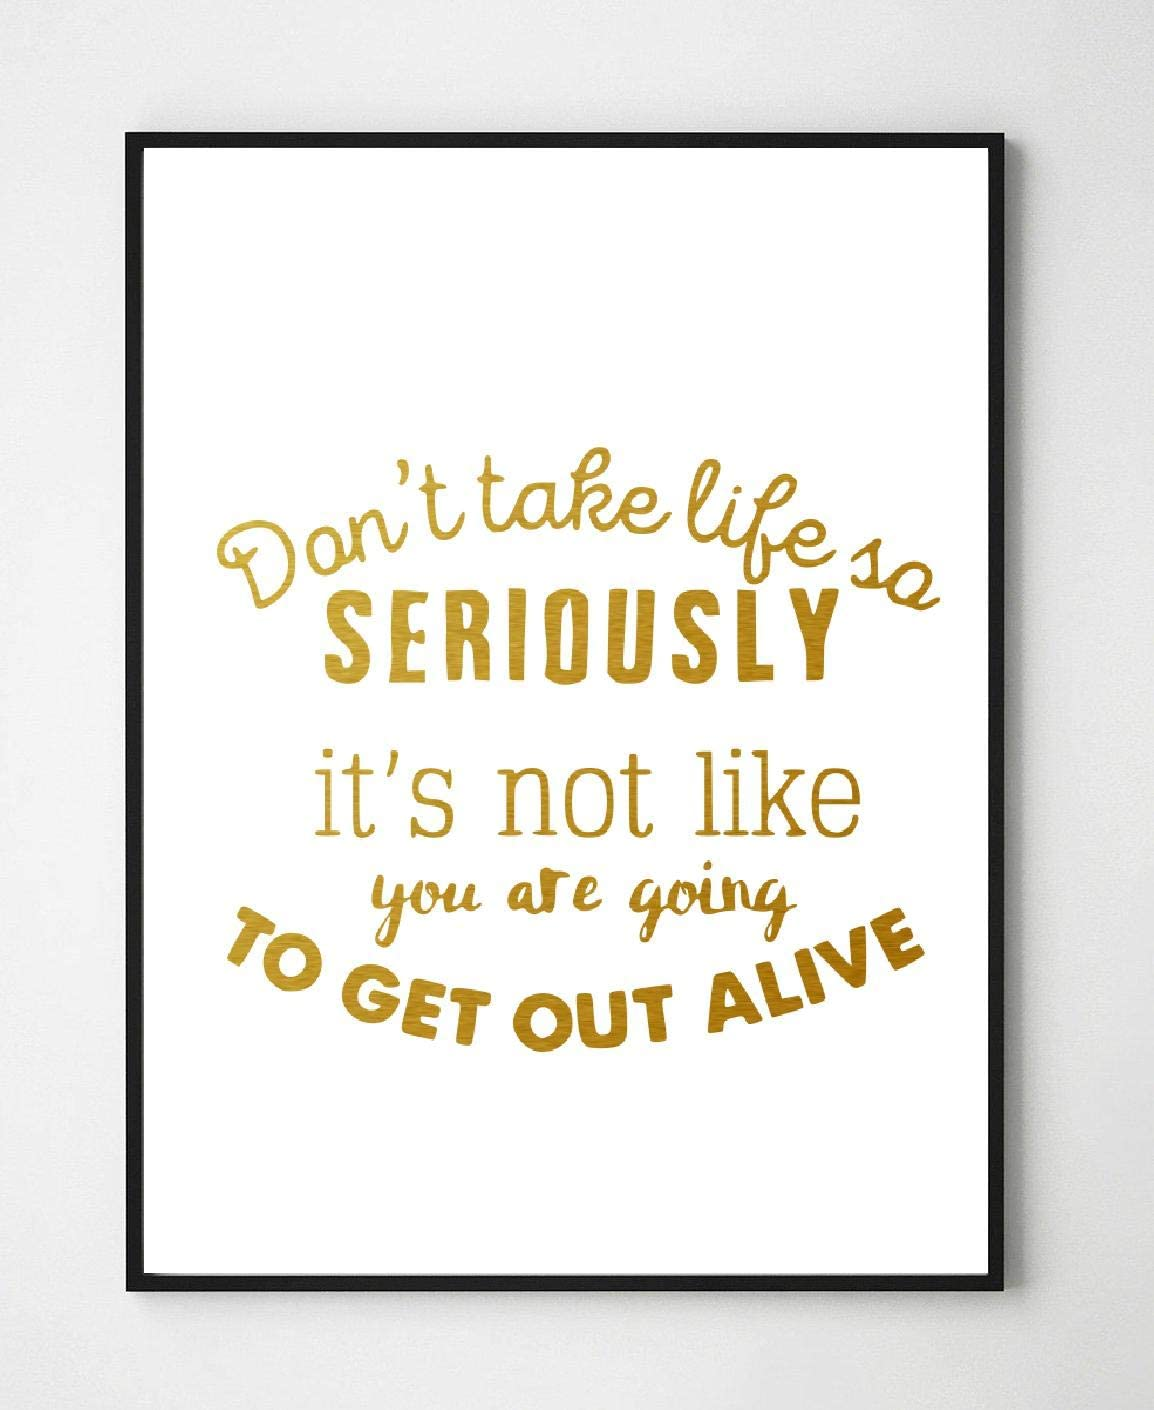 Turnip Designs Dont Take Life So Seriously You are Not Going to Get Out Alive 8X10 Unframed Funny Motivational Inspirational Office Home Gold Foil Art Print Wall Decor TDGF10